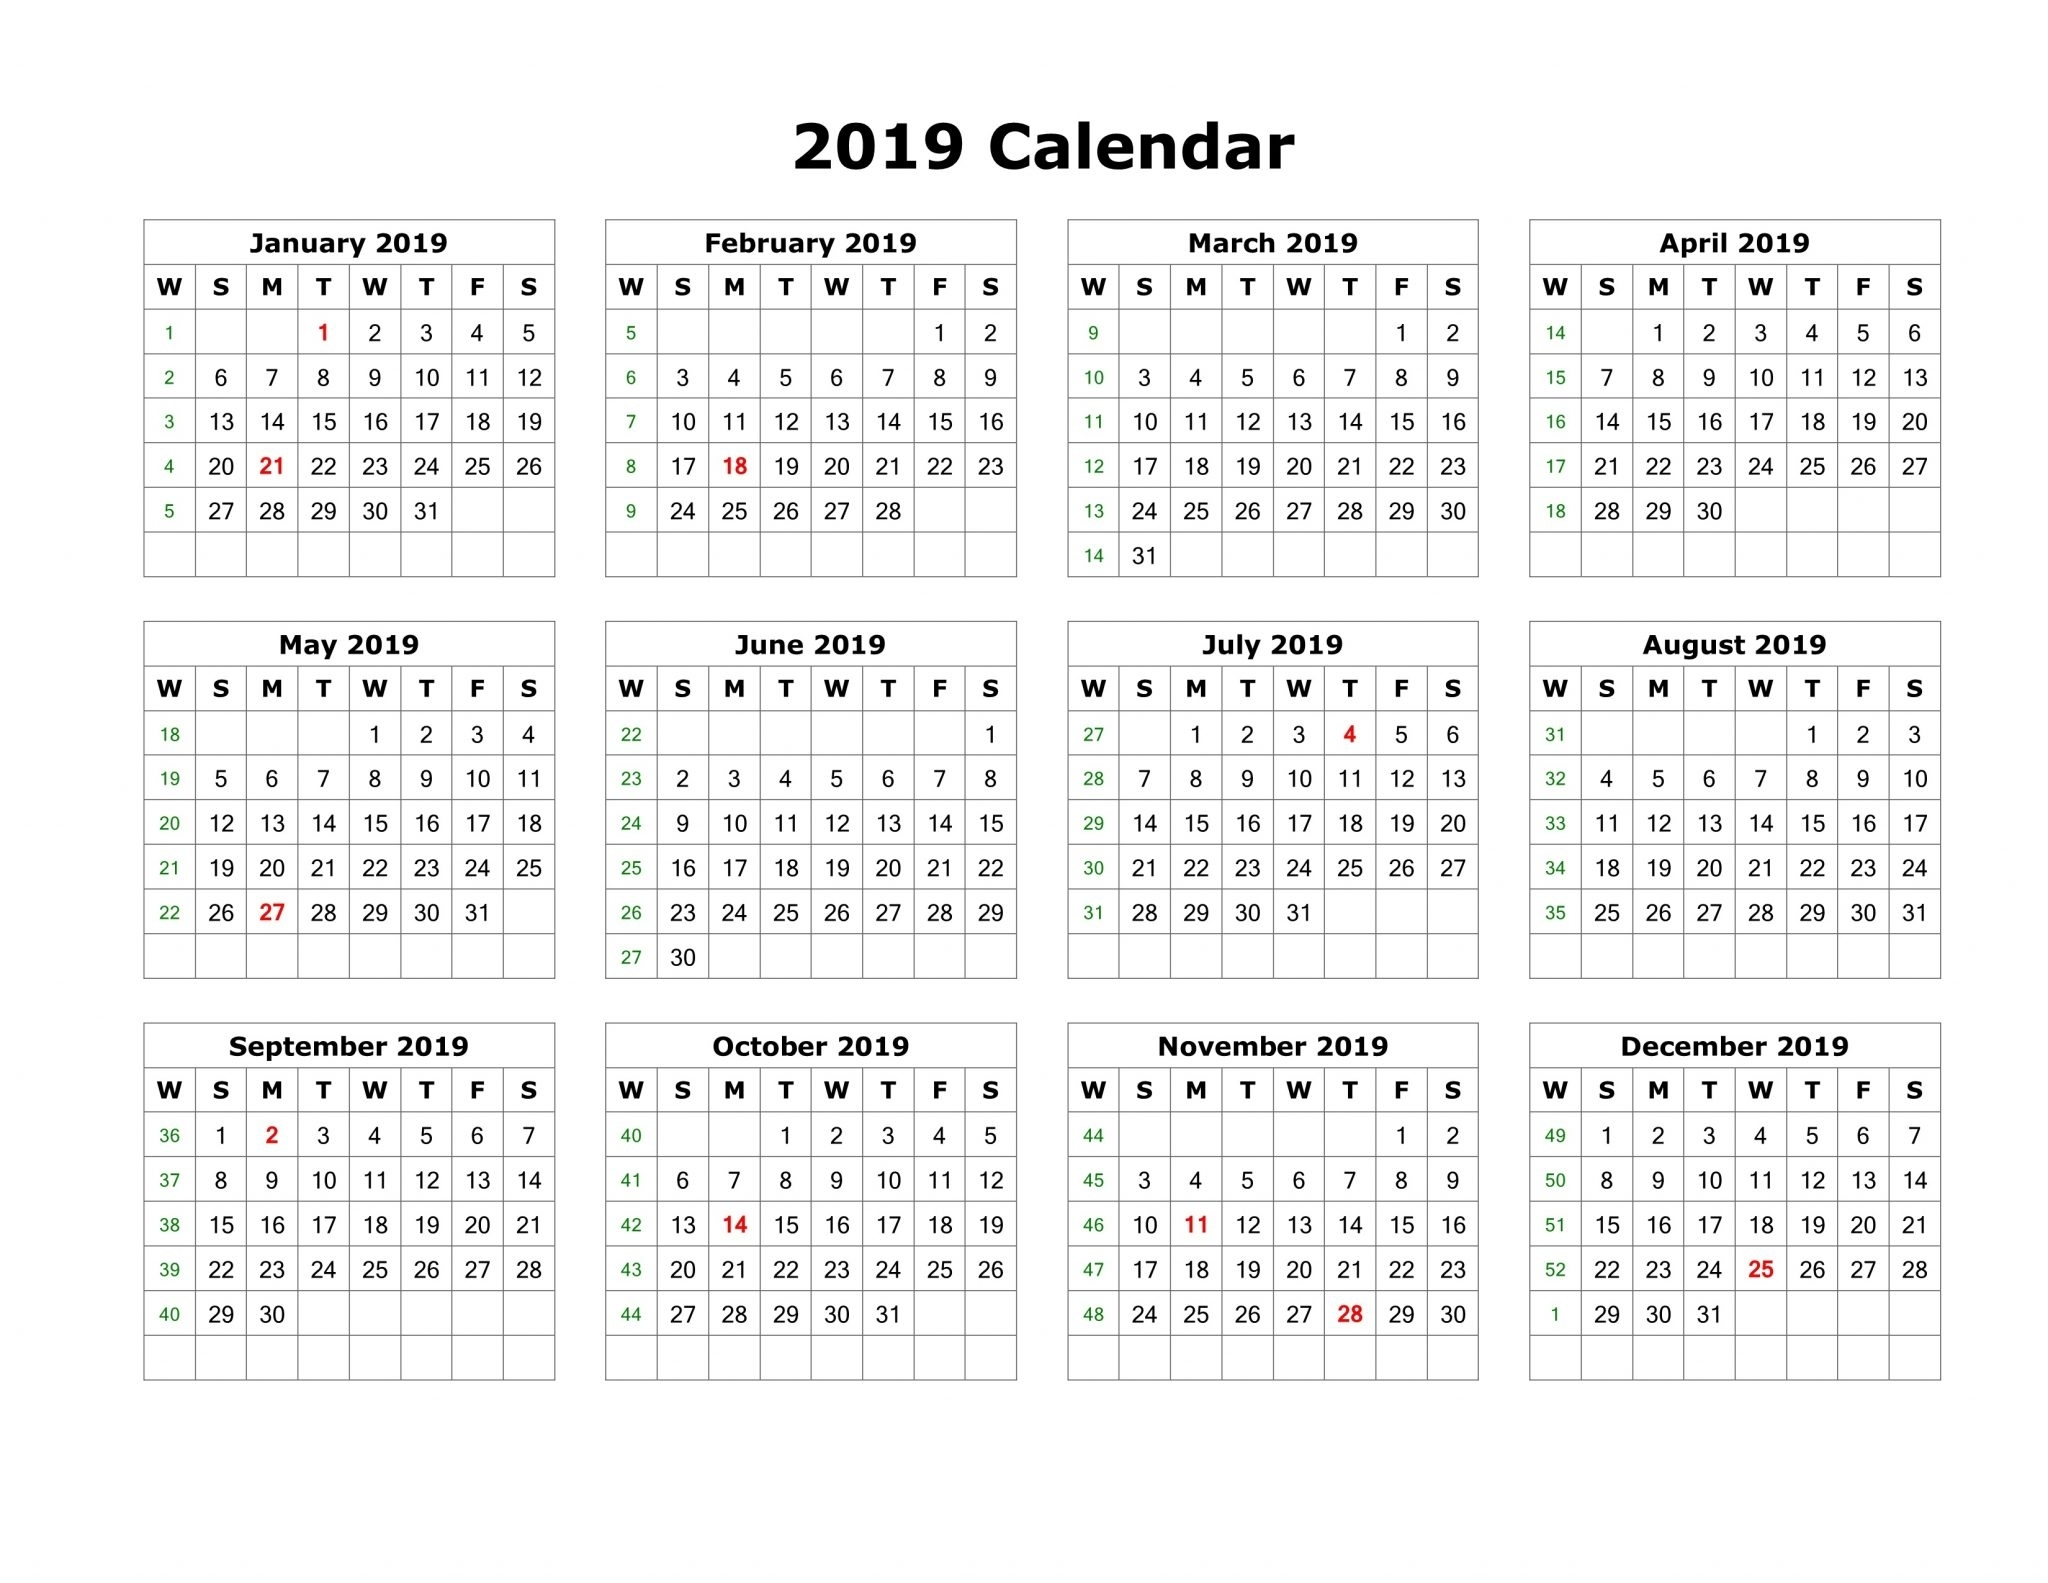 Free Printable Calendar 2019 With Holidays | Blank 12 Month Calendar intended for Blank 12 Month Calendar Printable